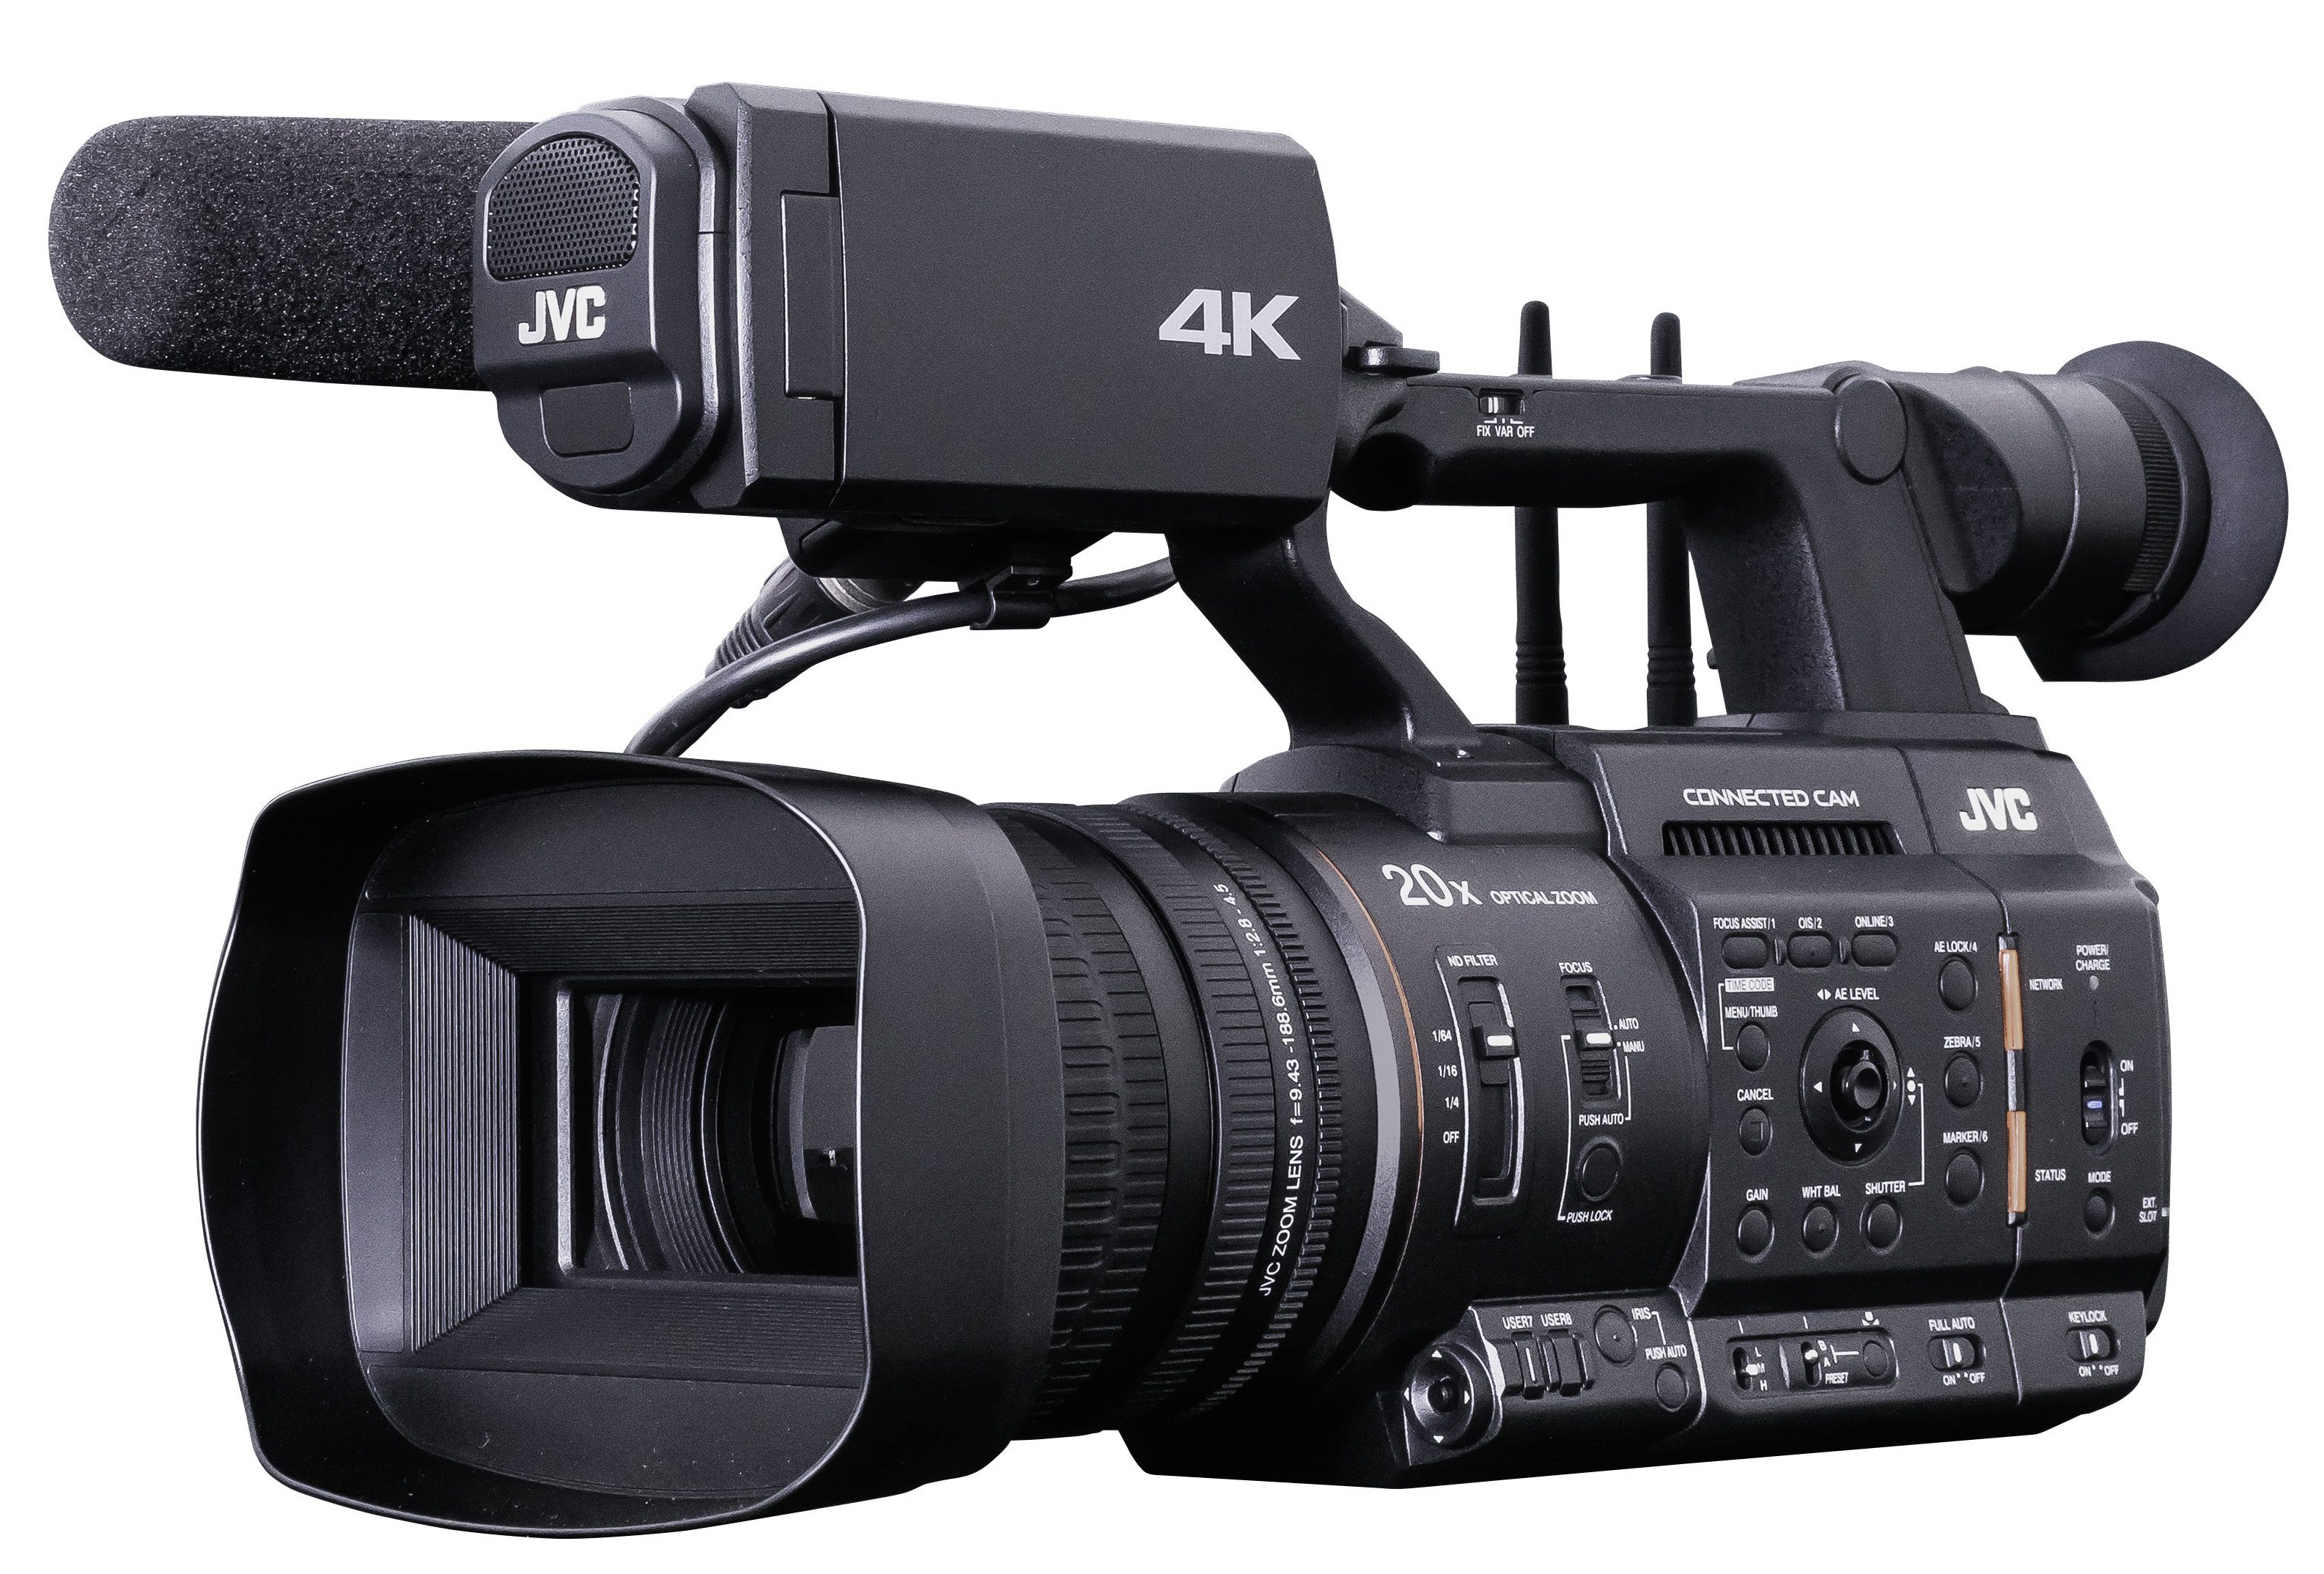 JVC GY-HC500 and 550 - professional camcorders with ProRES recording on M.2 SSDs and more // IBC 201